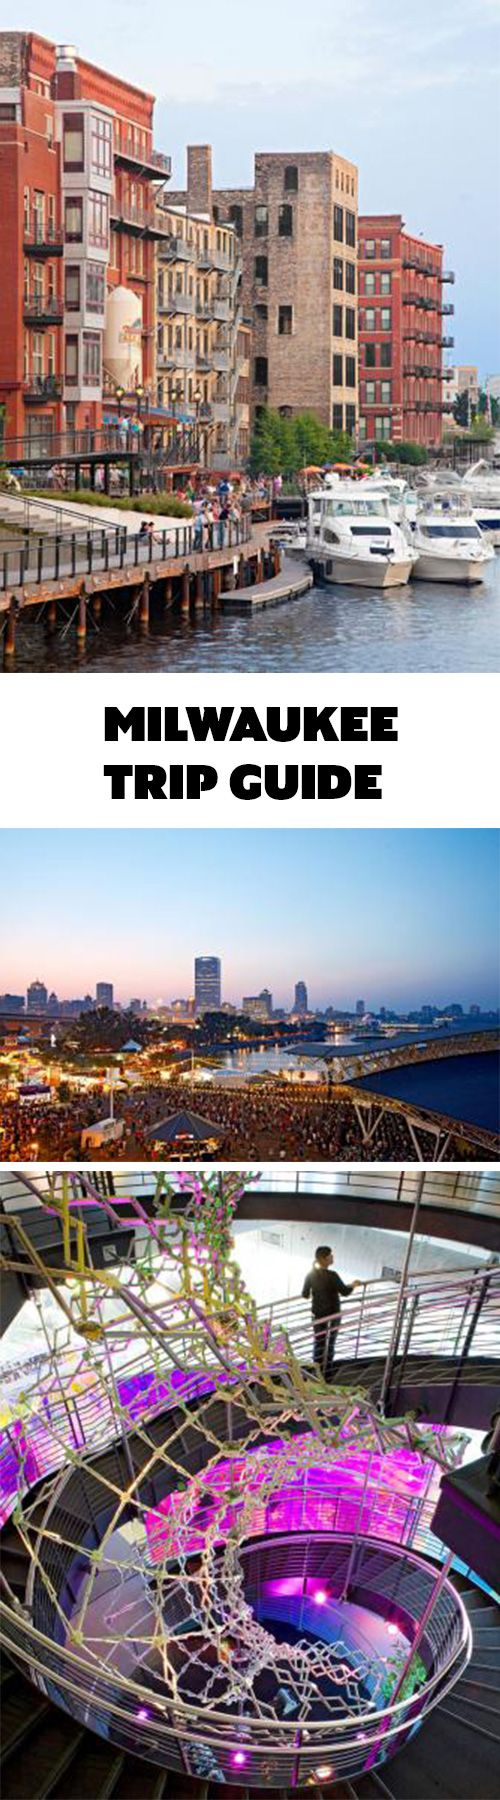 Festivals, museums, brewery tours and more draw visitors to Milwaukee, Wisconsin: http://www.midwestliving.com/travel/wisconsin/milwaukee/milwaukee-trip-guide/